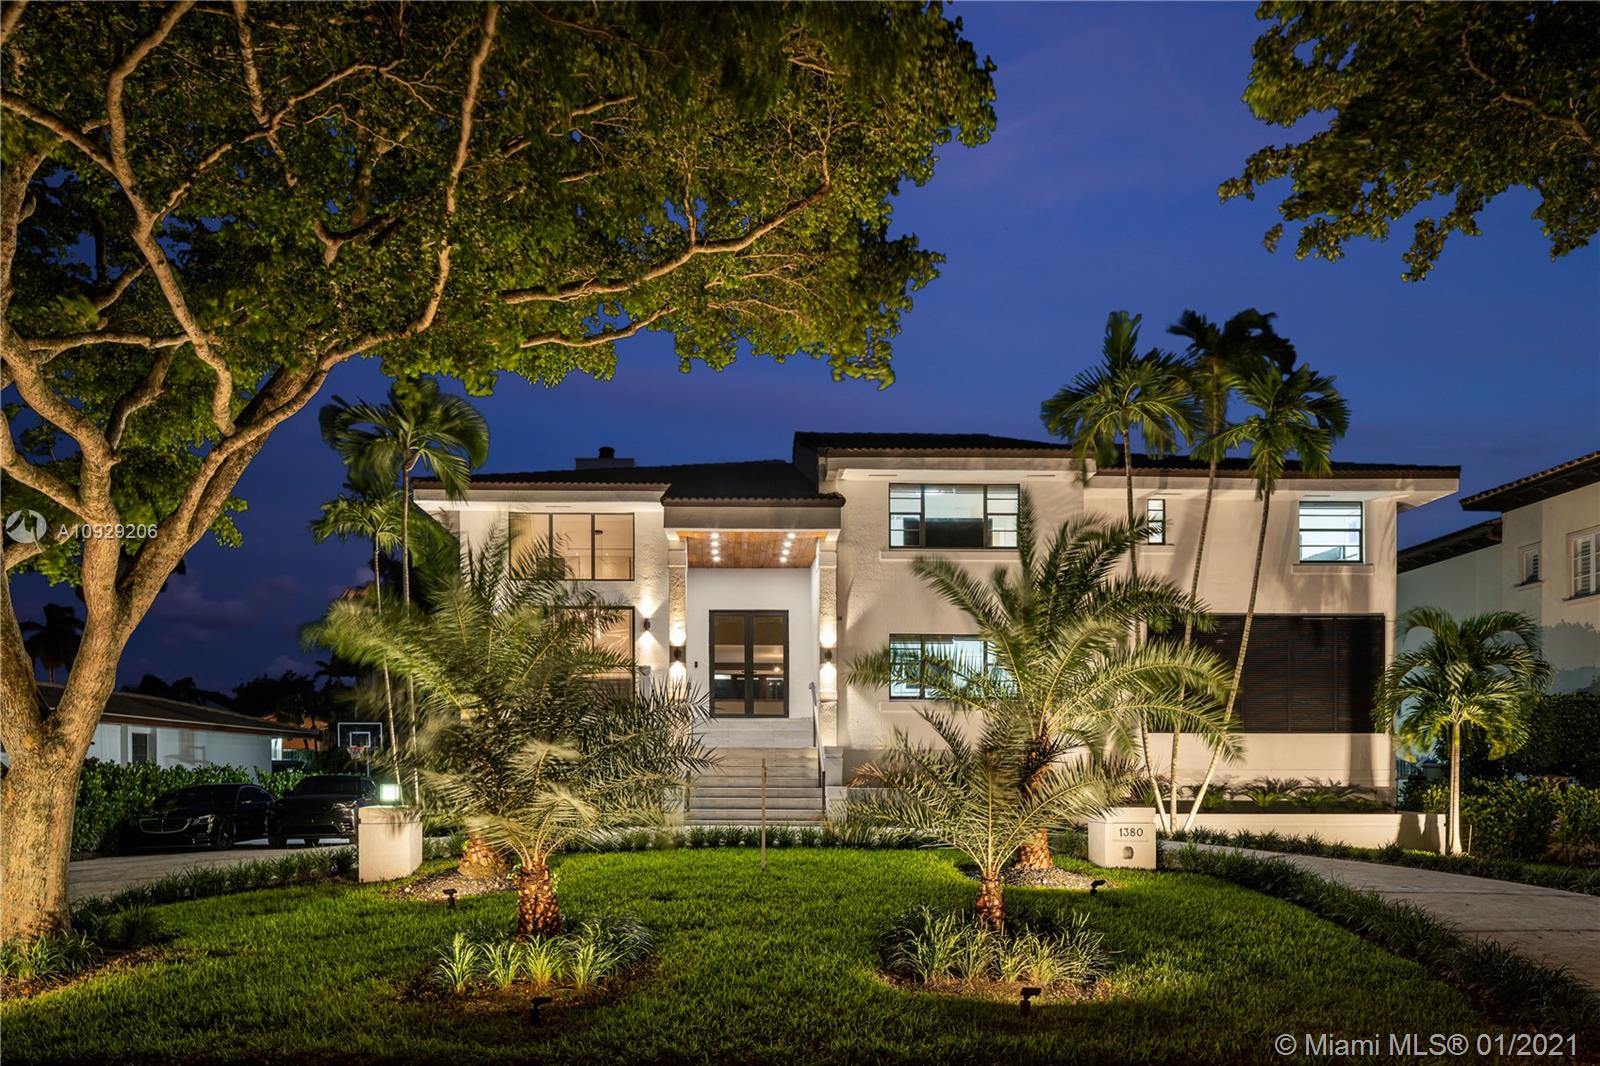 Magnificent Modern Masterpiece! Located in Guard-Gated Gables by the Sea on a 12,000 SF waterfront lot. This 5 bed 6.5 bath home offers 3 floors of luxury living with state of the art features. Dramatic double height windows, glass staircases, spectacular water views, en-suite bedrooms & home gym will not disappoint. Enjoy the combined family room & gourmet kitchen with Thermador Appliances that overlook a resort style patio. Elegant wood ceilings cover the outdoor living area equipped with custom TV's, a new age summer kitchen & breathtaking Sunrises and Sunsets! The living room is dazzling with a quartz finished fireplace & the dining room has a one of a kind glass enclosed 380 bottle wine cellar. The media/card room with TVs & wet bar is perfect for spending time with family and friends